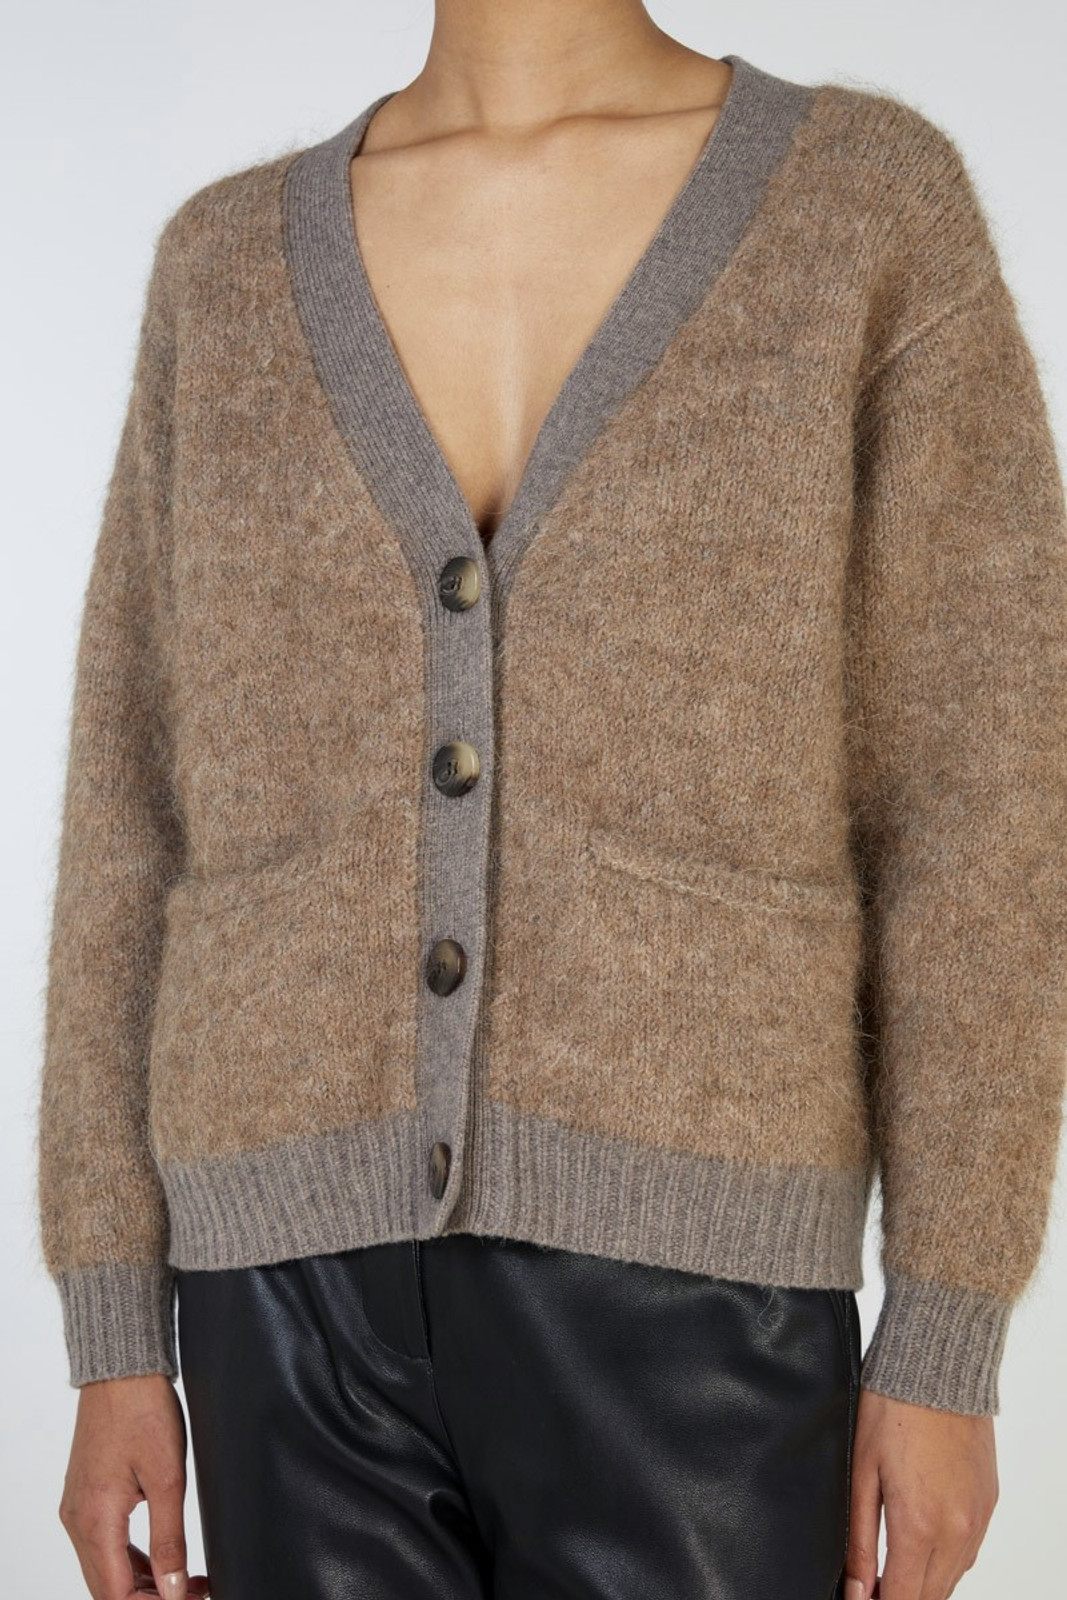 Elka Collective Unity Knit Cardi Brown  4